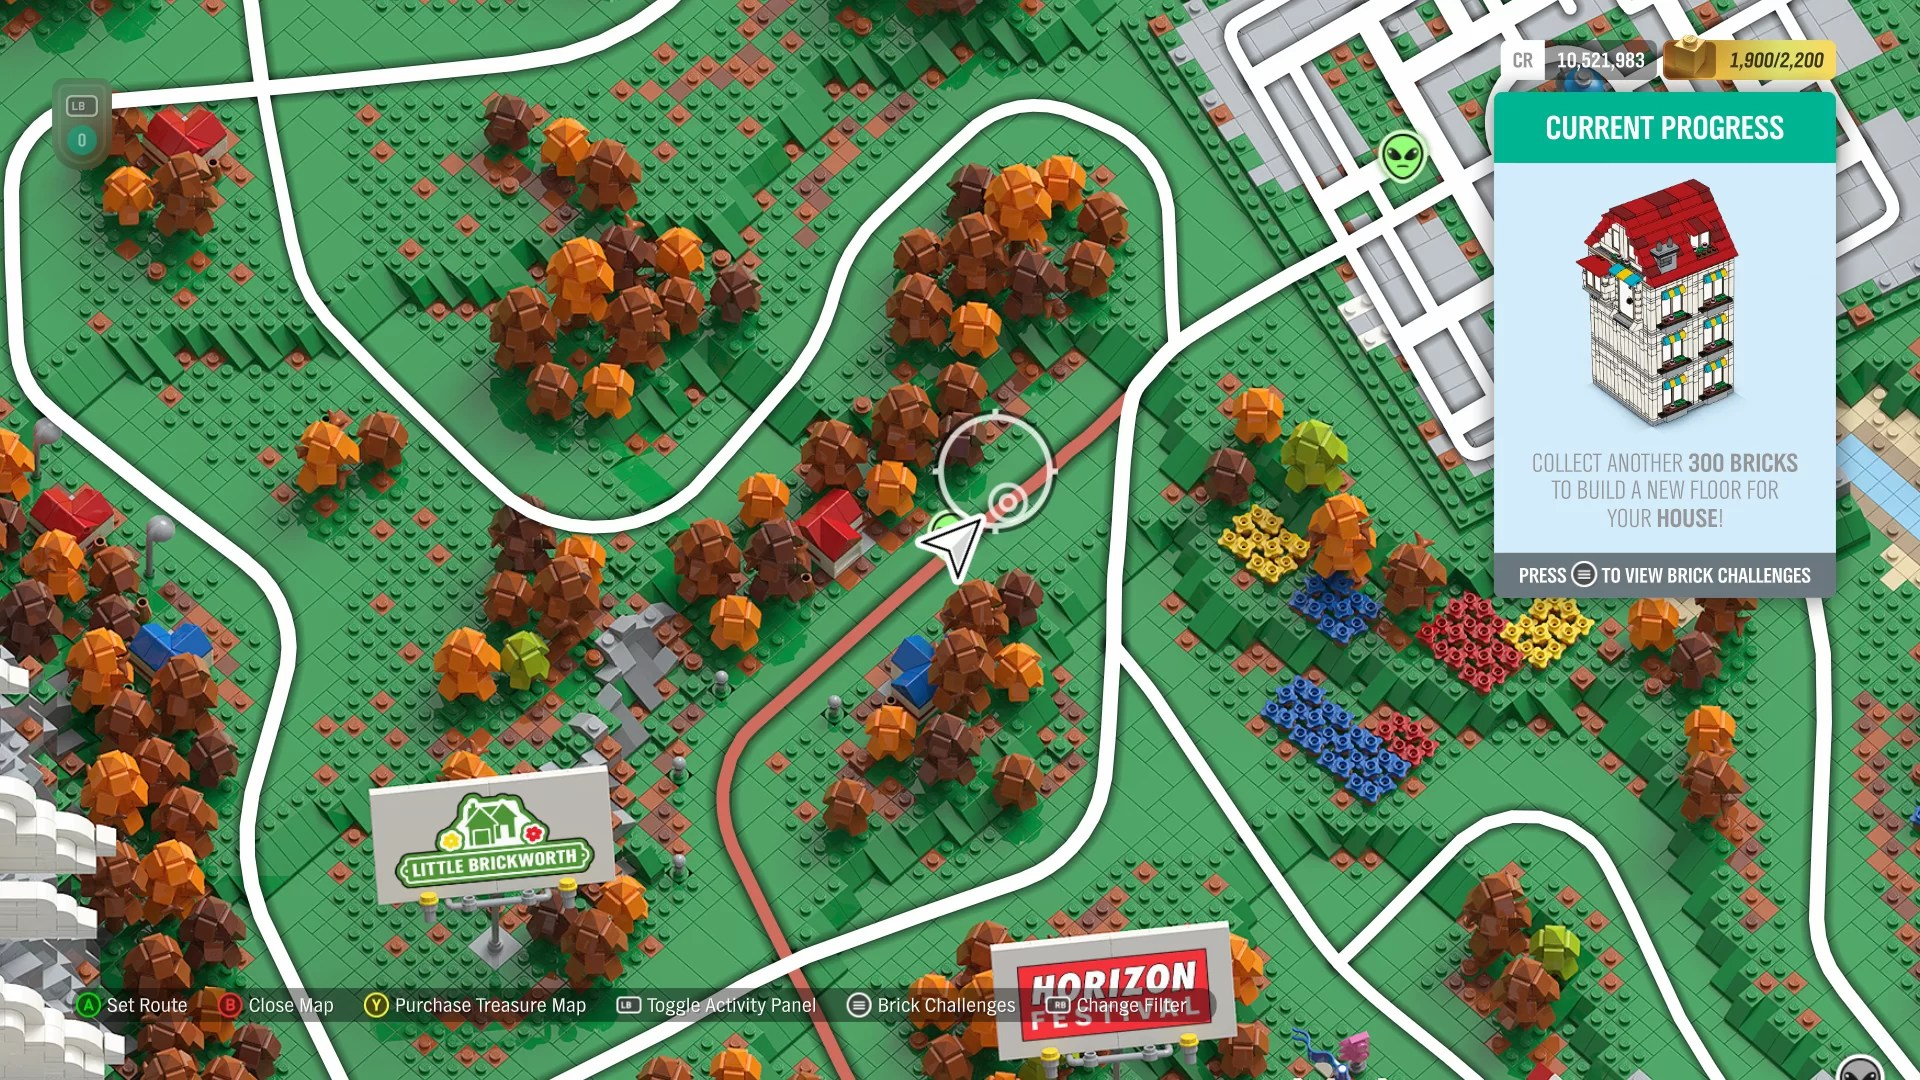 Forza Horizon 4 Alien Energy Cell Locations Guide – Where to Find